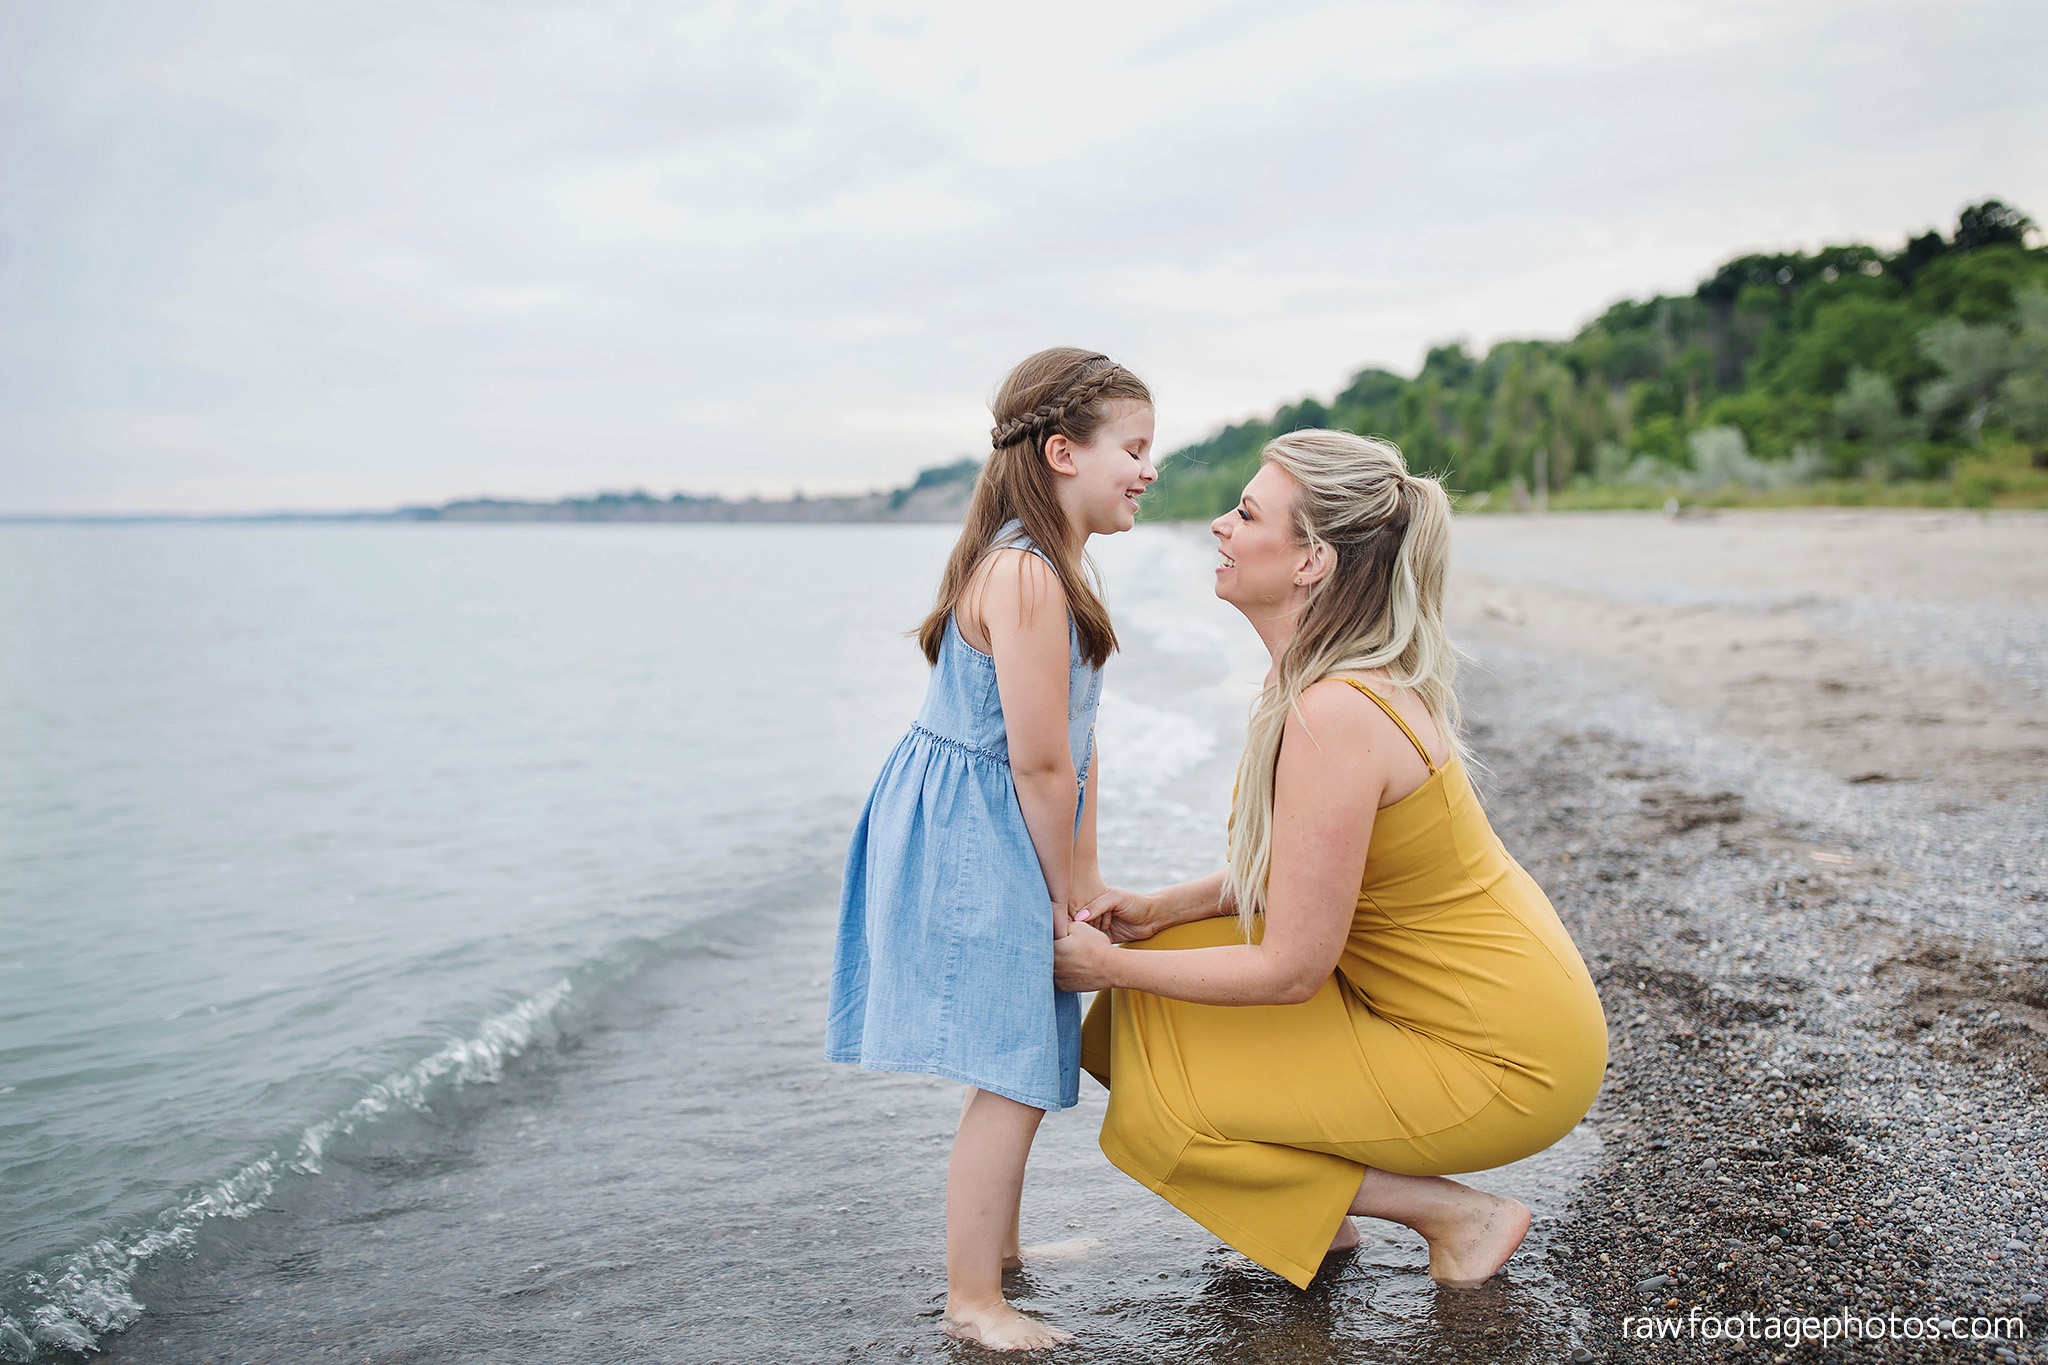 london_ontario_family_photographer-beach_minis-port_stanley_beach-raw_footage_photography042.jpg